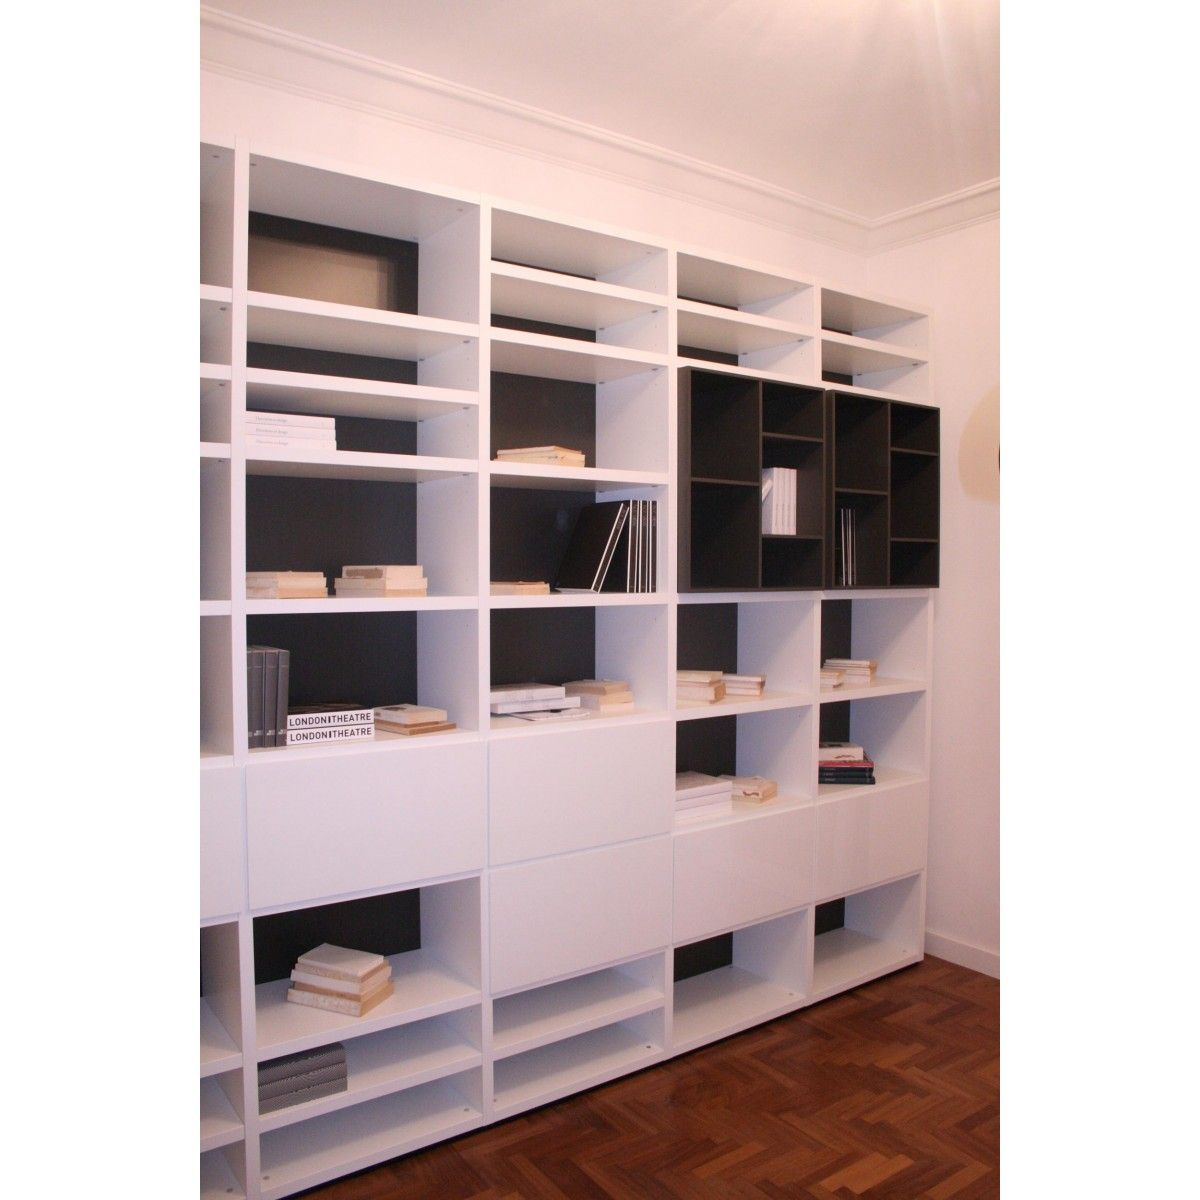 Outlet Mobili Poliform.Wall System Outlet Poliform Design Outlet Online